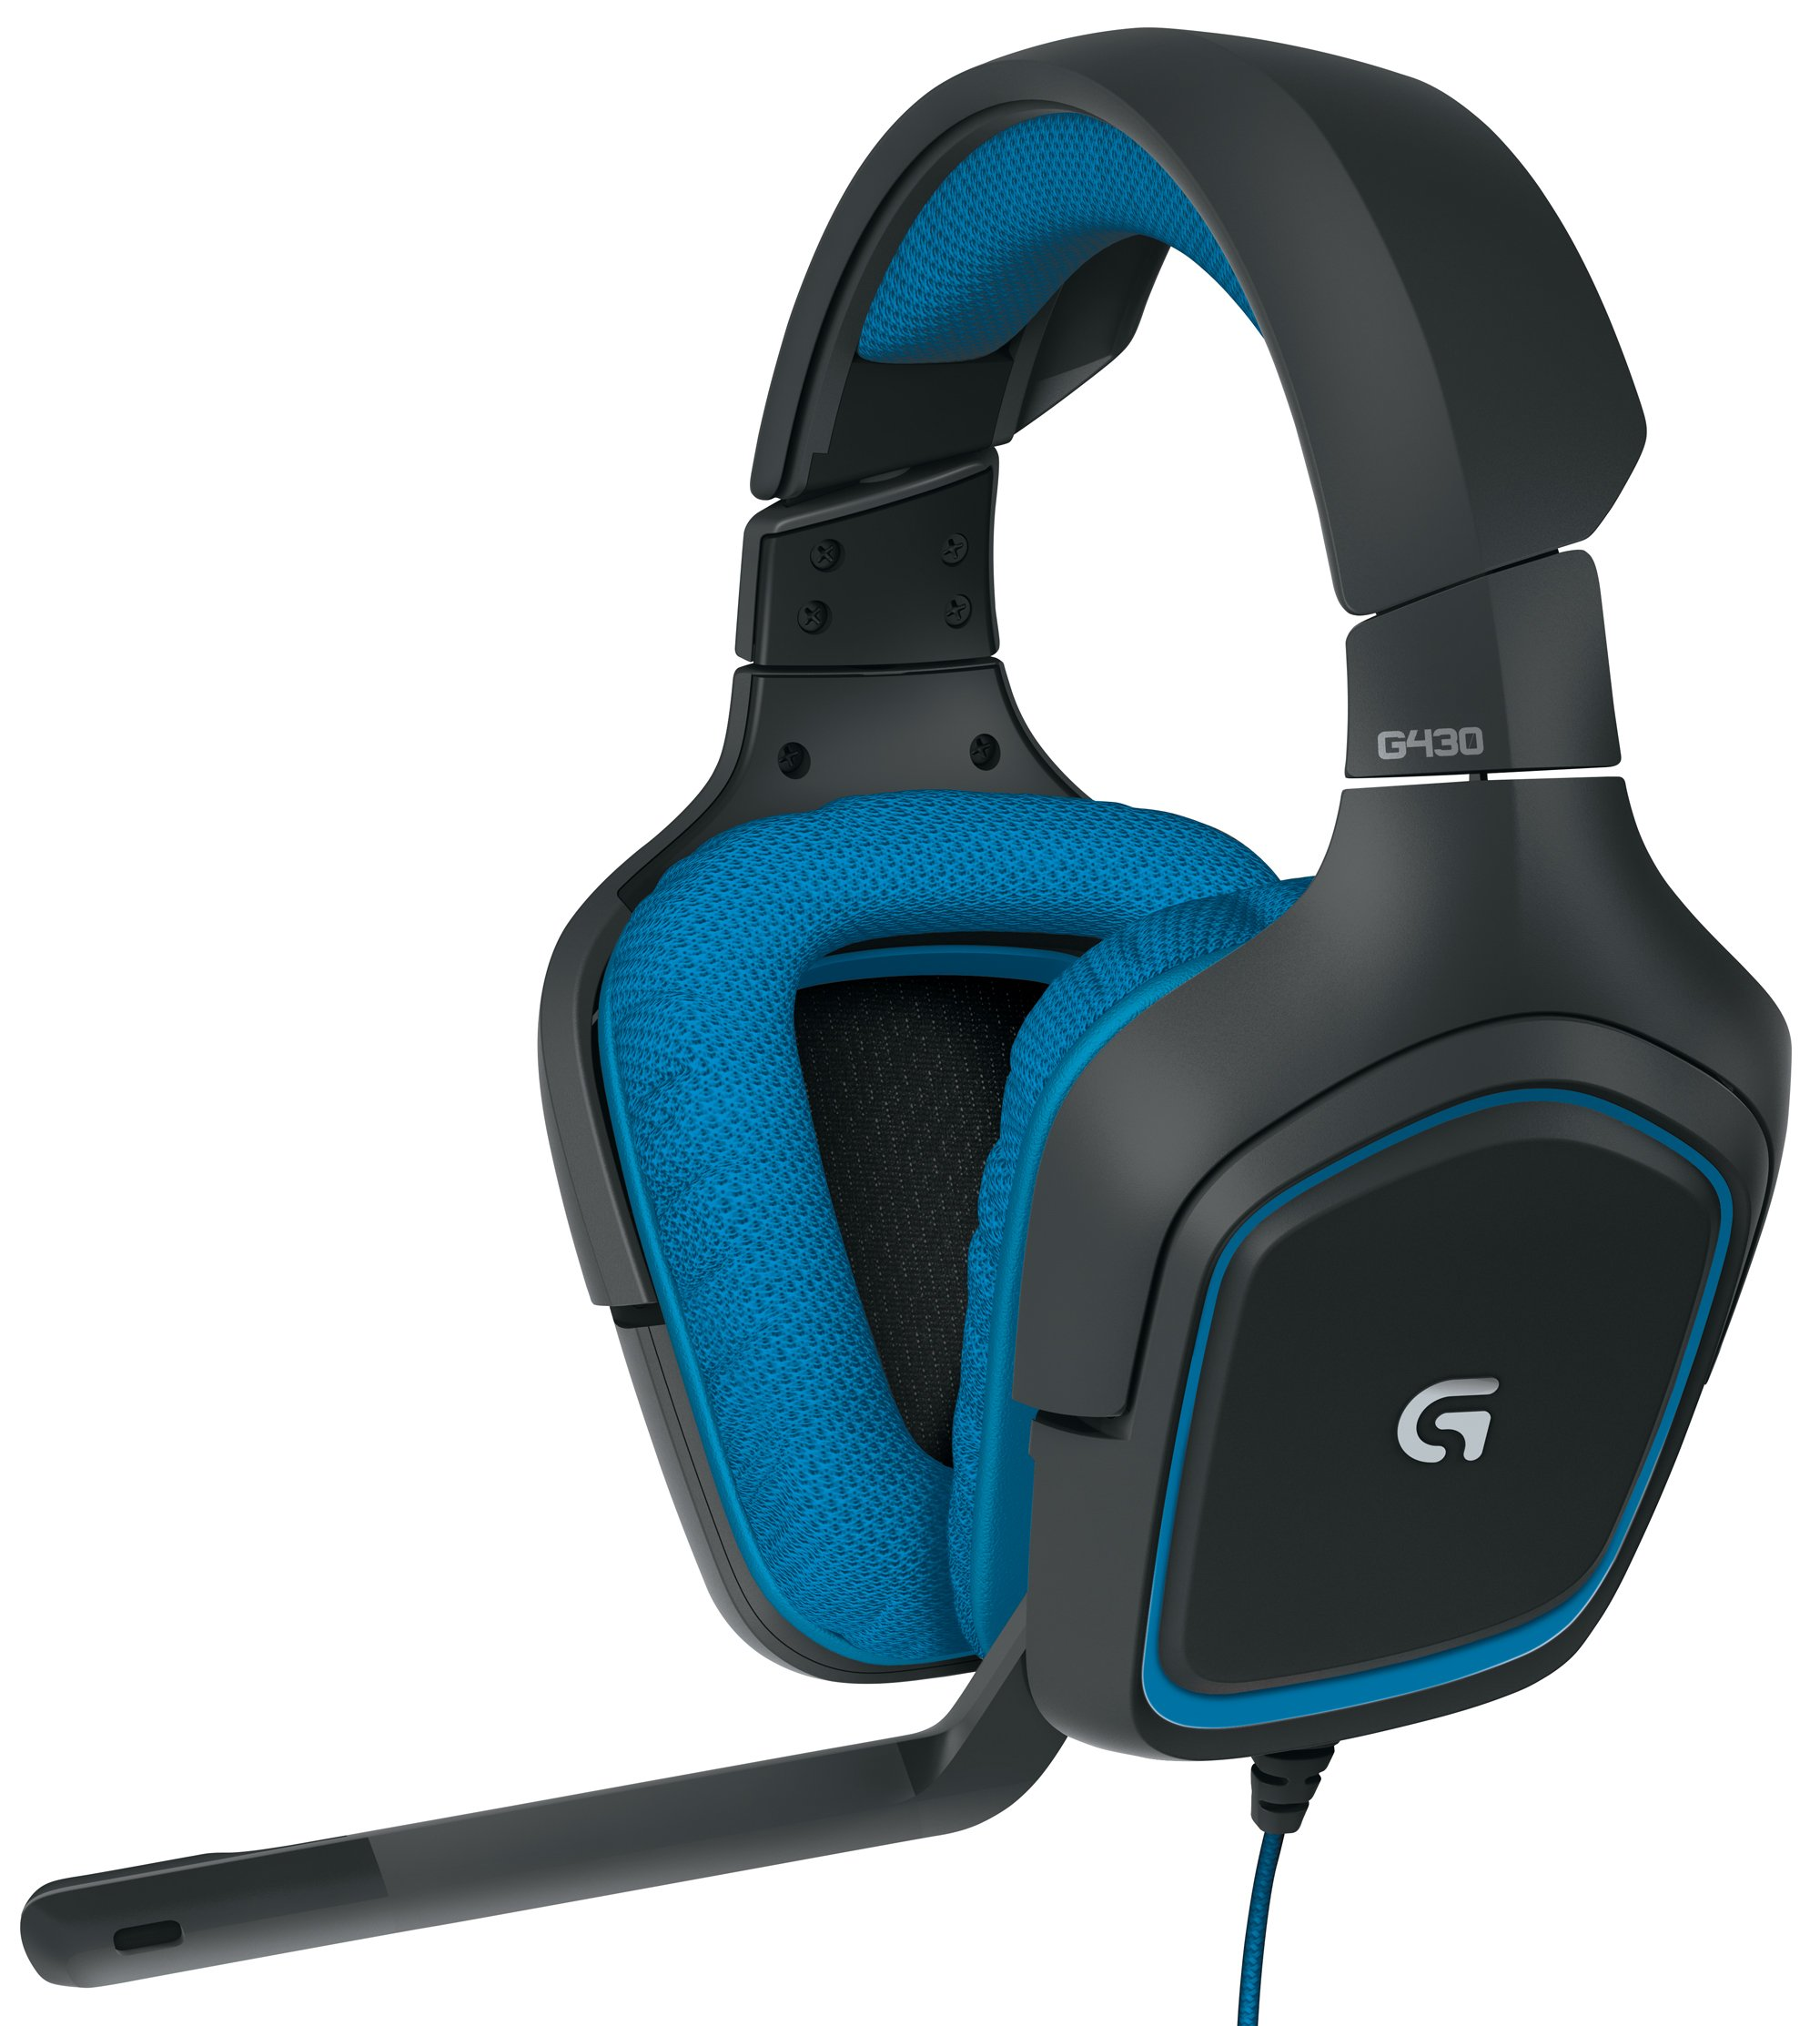 Logitech 981-000536 G430 7.1 Gaming Headset with Mic by Logitech G